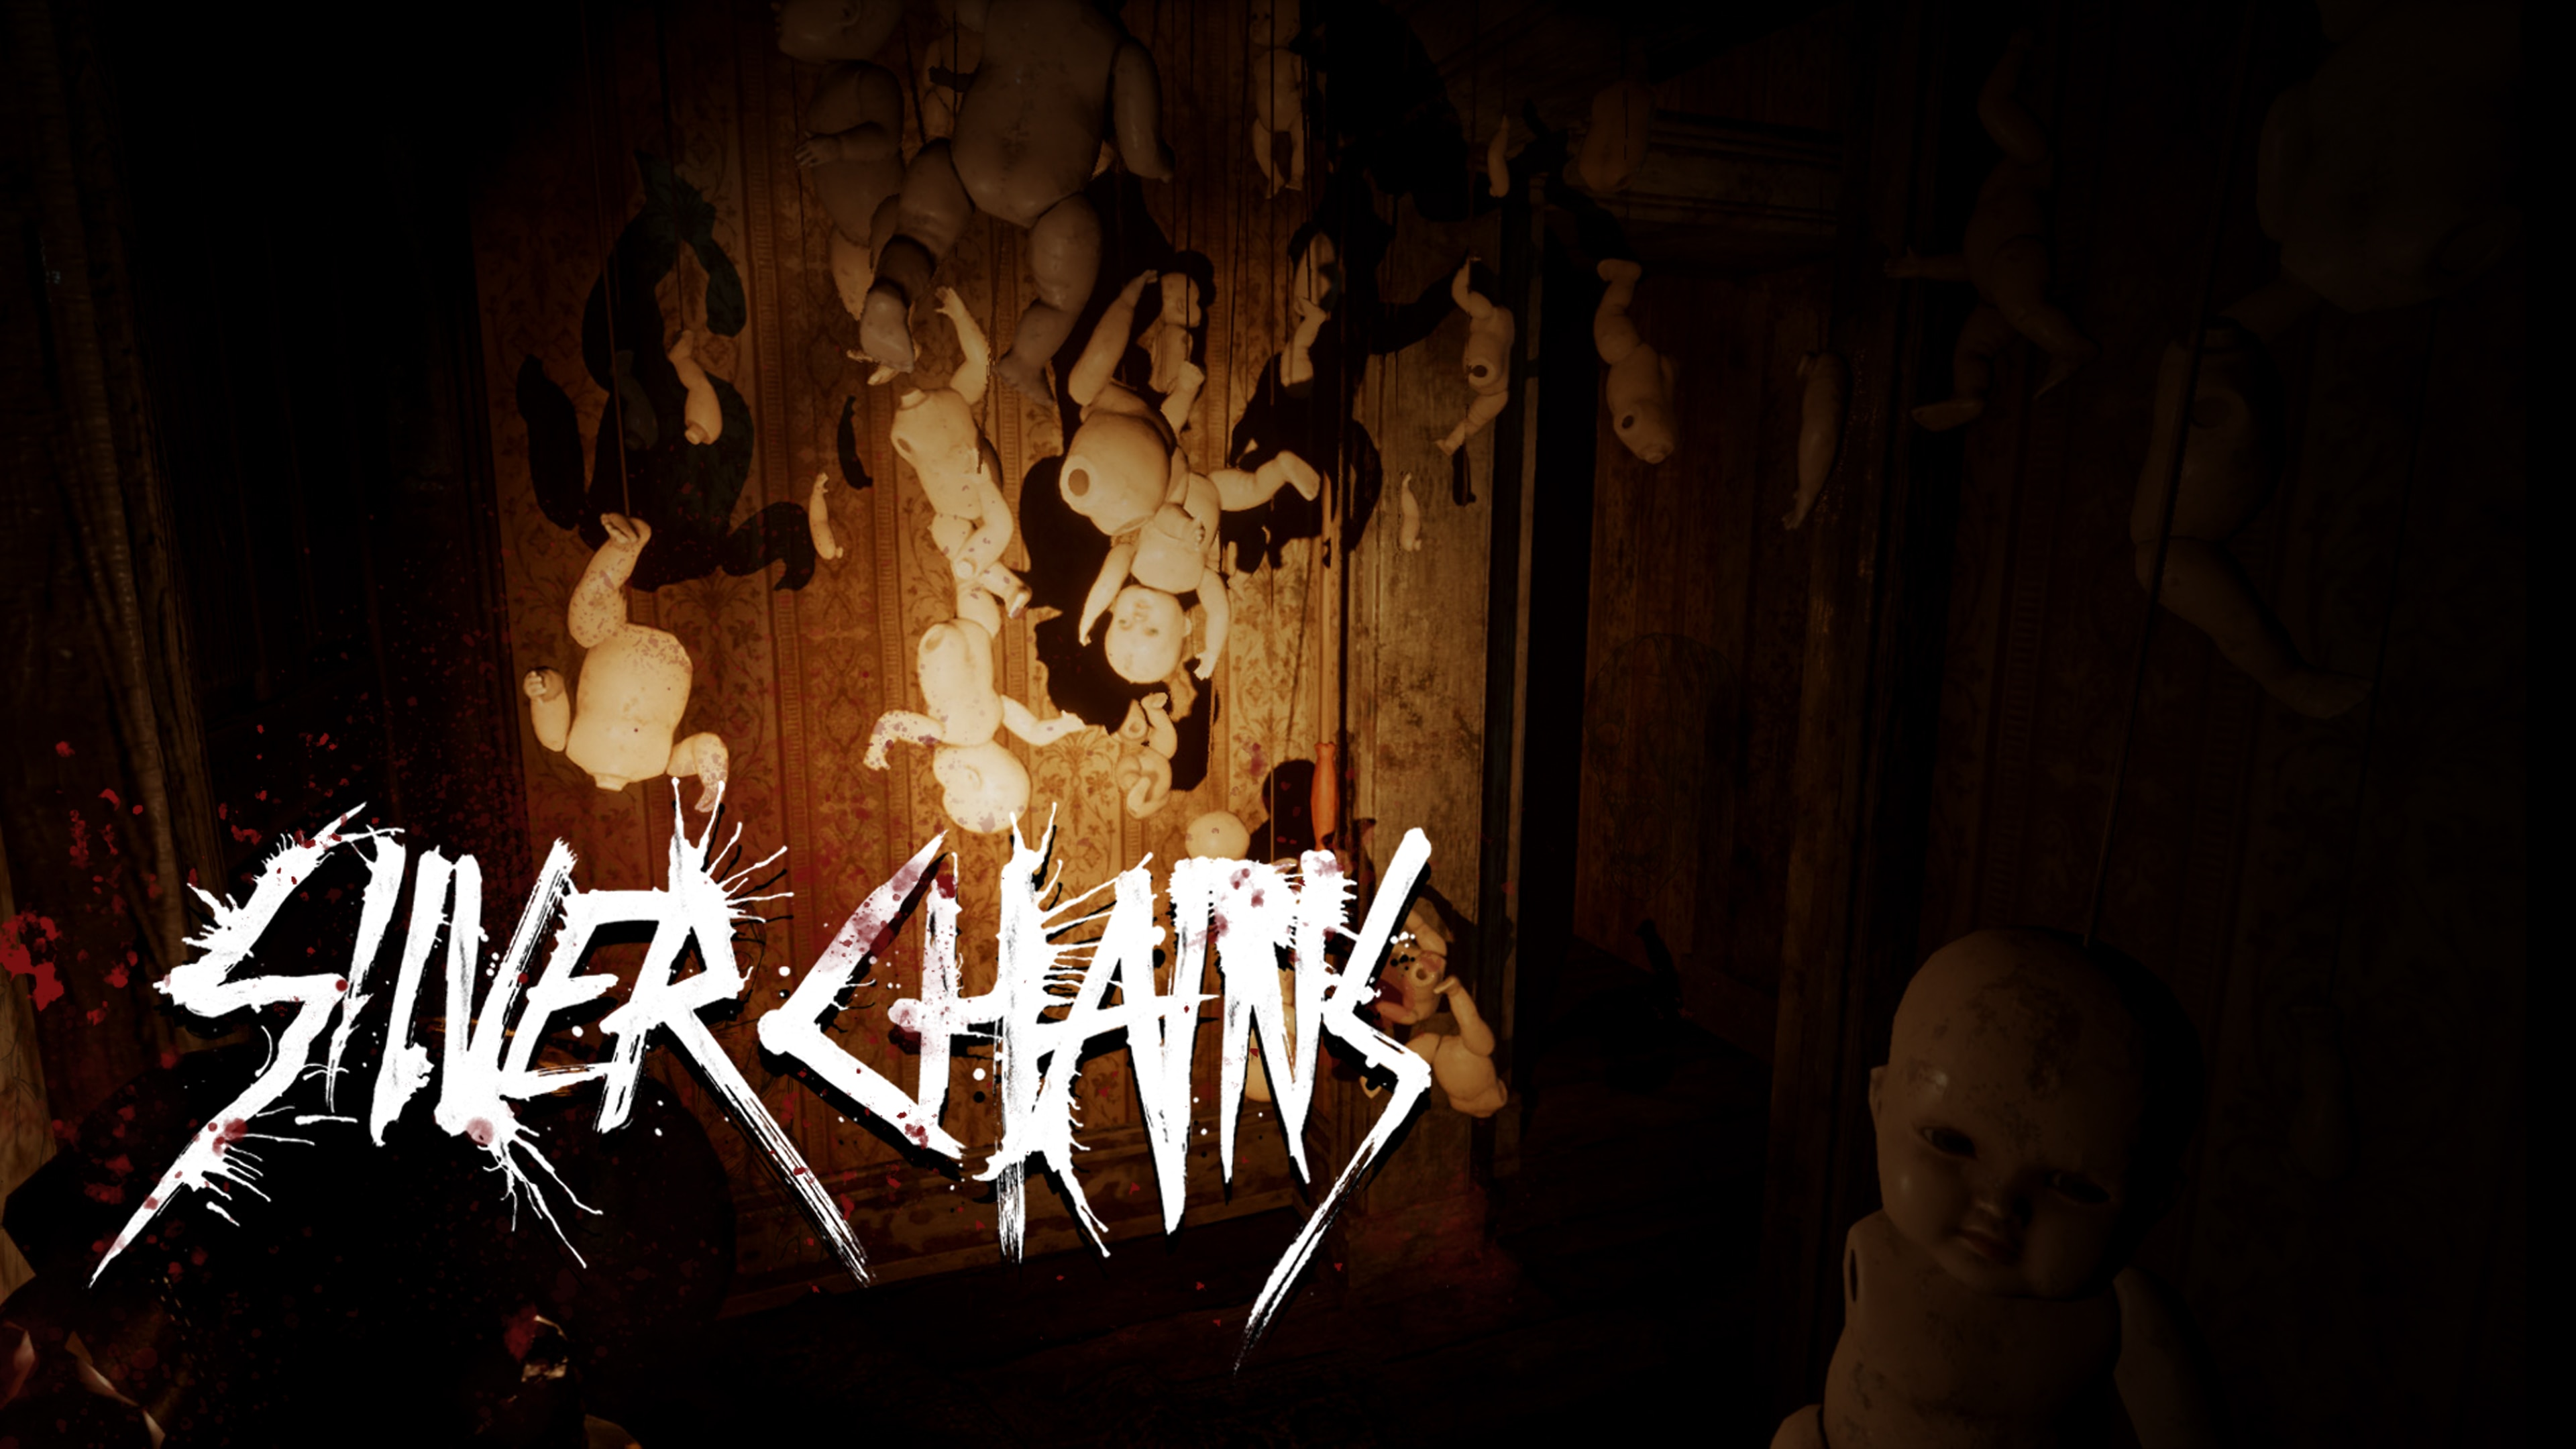 Silver Chains (シルバーチェーン)